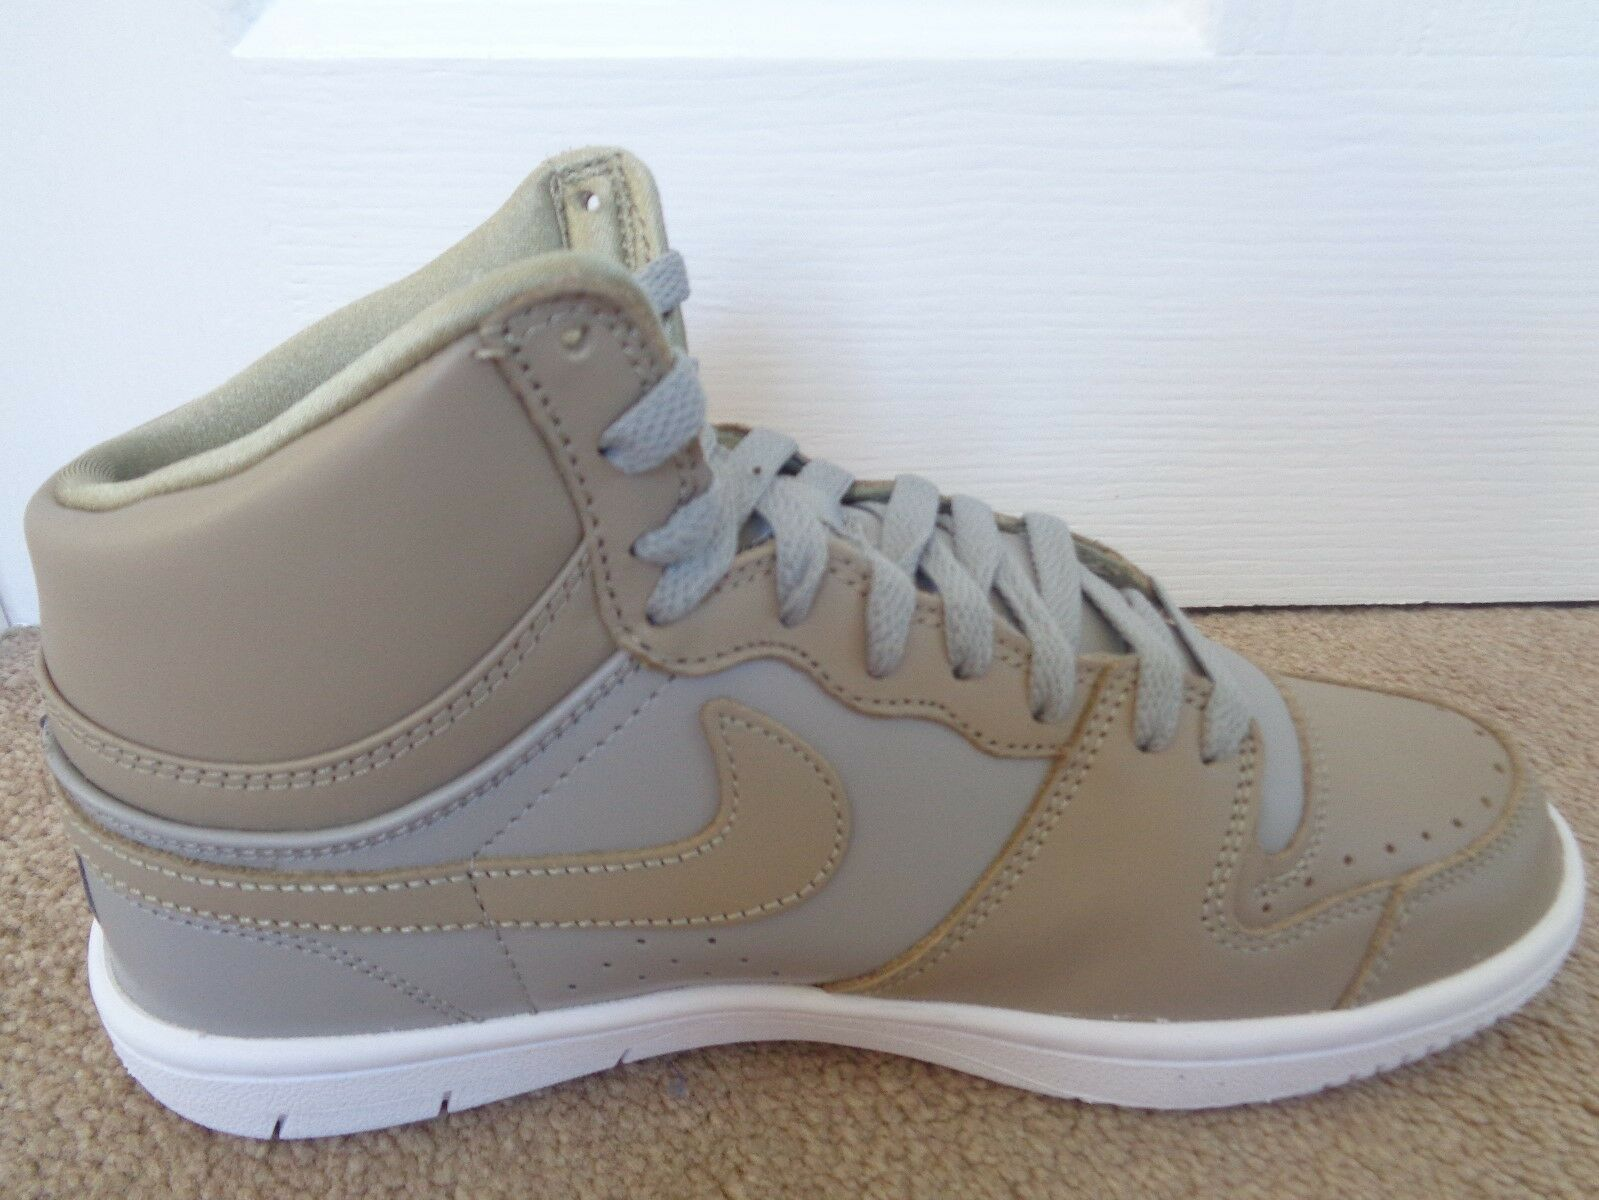 Nike Court Force/Undercover homme trainers BOX Baskets 826667 220 NEW BOX trainers 715160